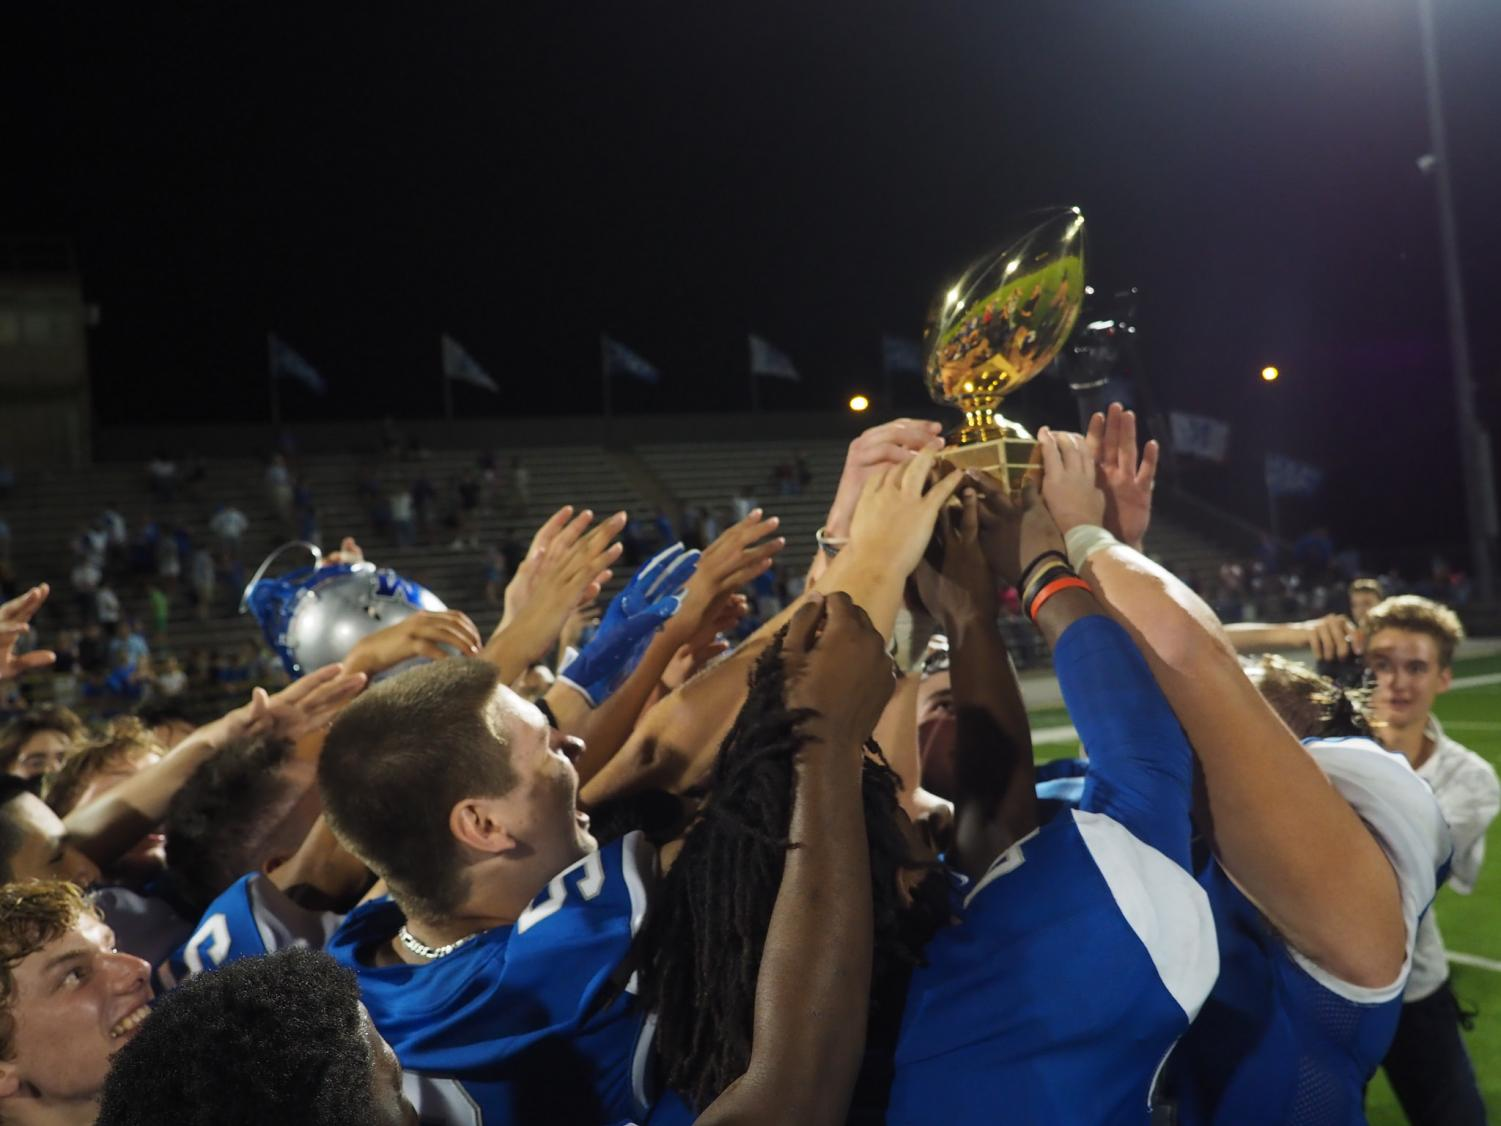 THREEPEAT: The Knights hoist the Taco Shack Trophy after winning the annual game 21-20. Photo by Gregory James